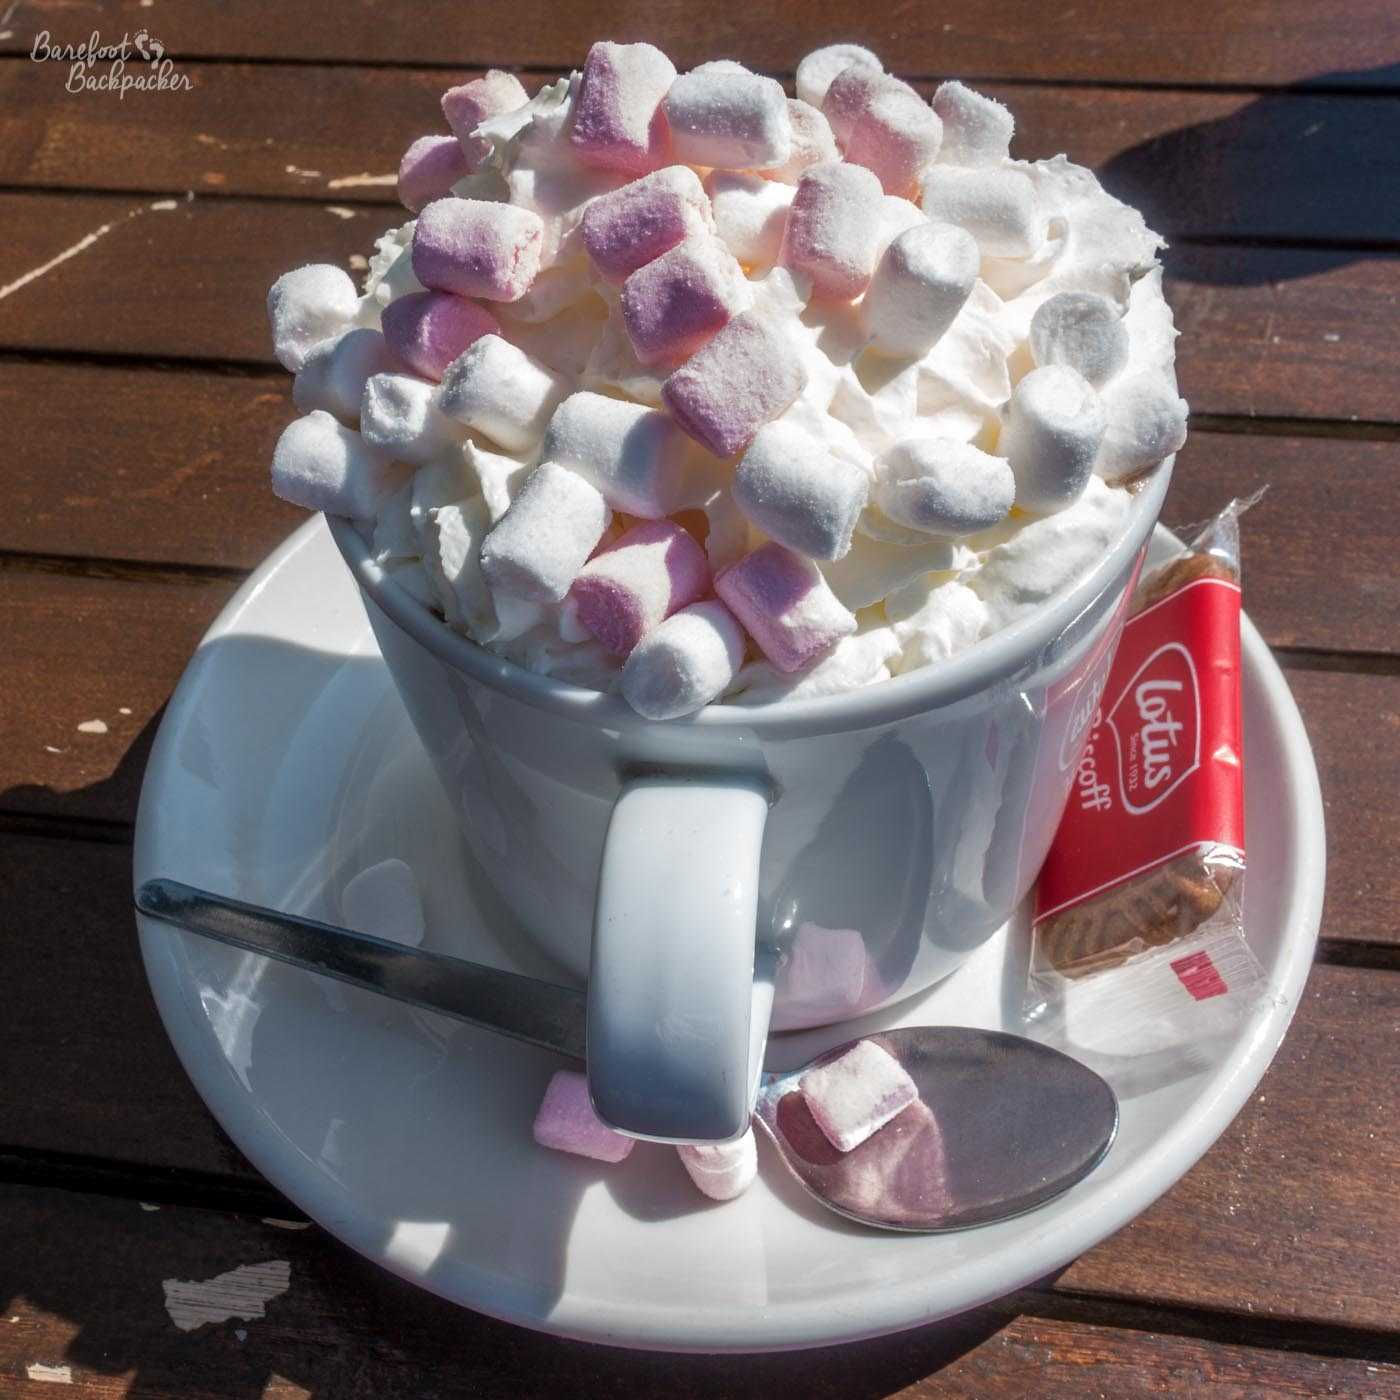 A mug of hot chocolate, with pink marshmallows. A welcome late breakfast, in a cafe on the Norfolk Coast Path that no-one reading this can ever have again.